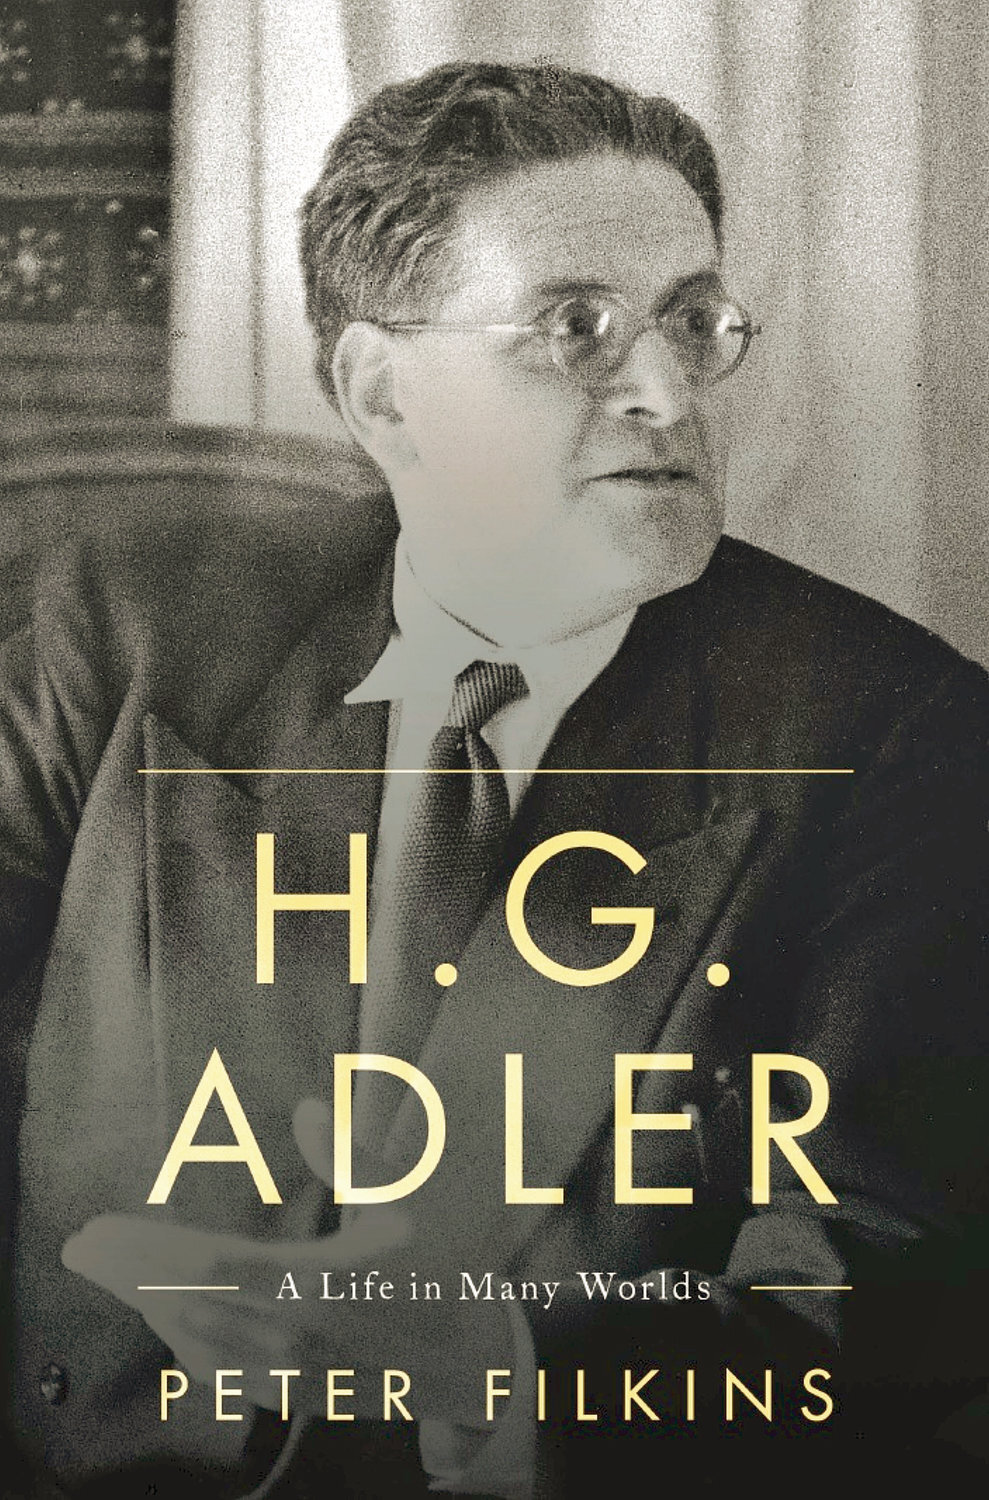 H.G. Adler: A Life in Many Worlds by Peter Filkins - My review of H.G. Adler by Peter Filkins is now available on the George L. Mosse Program in History Blog.